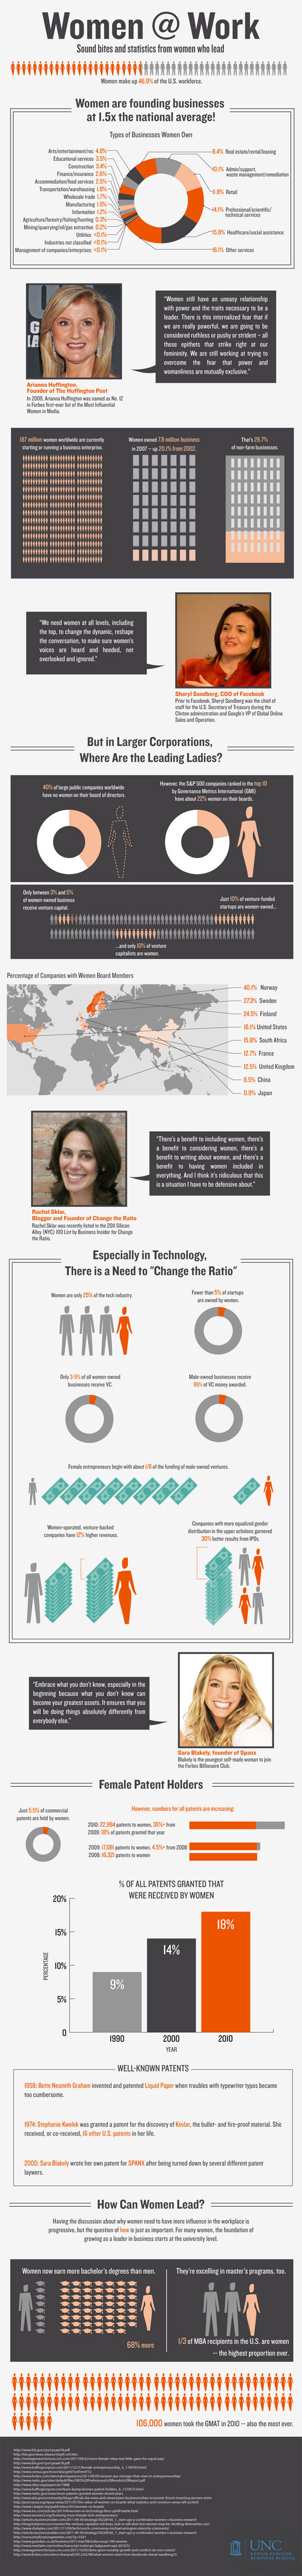 Women-at-Work-Infographic-MBA-at-UNC